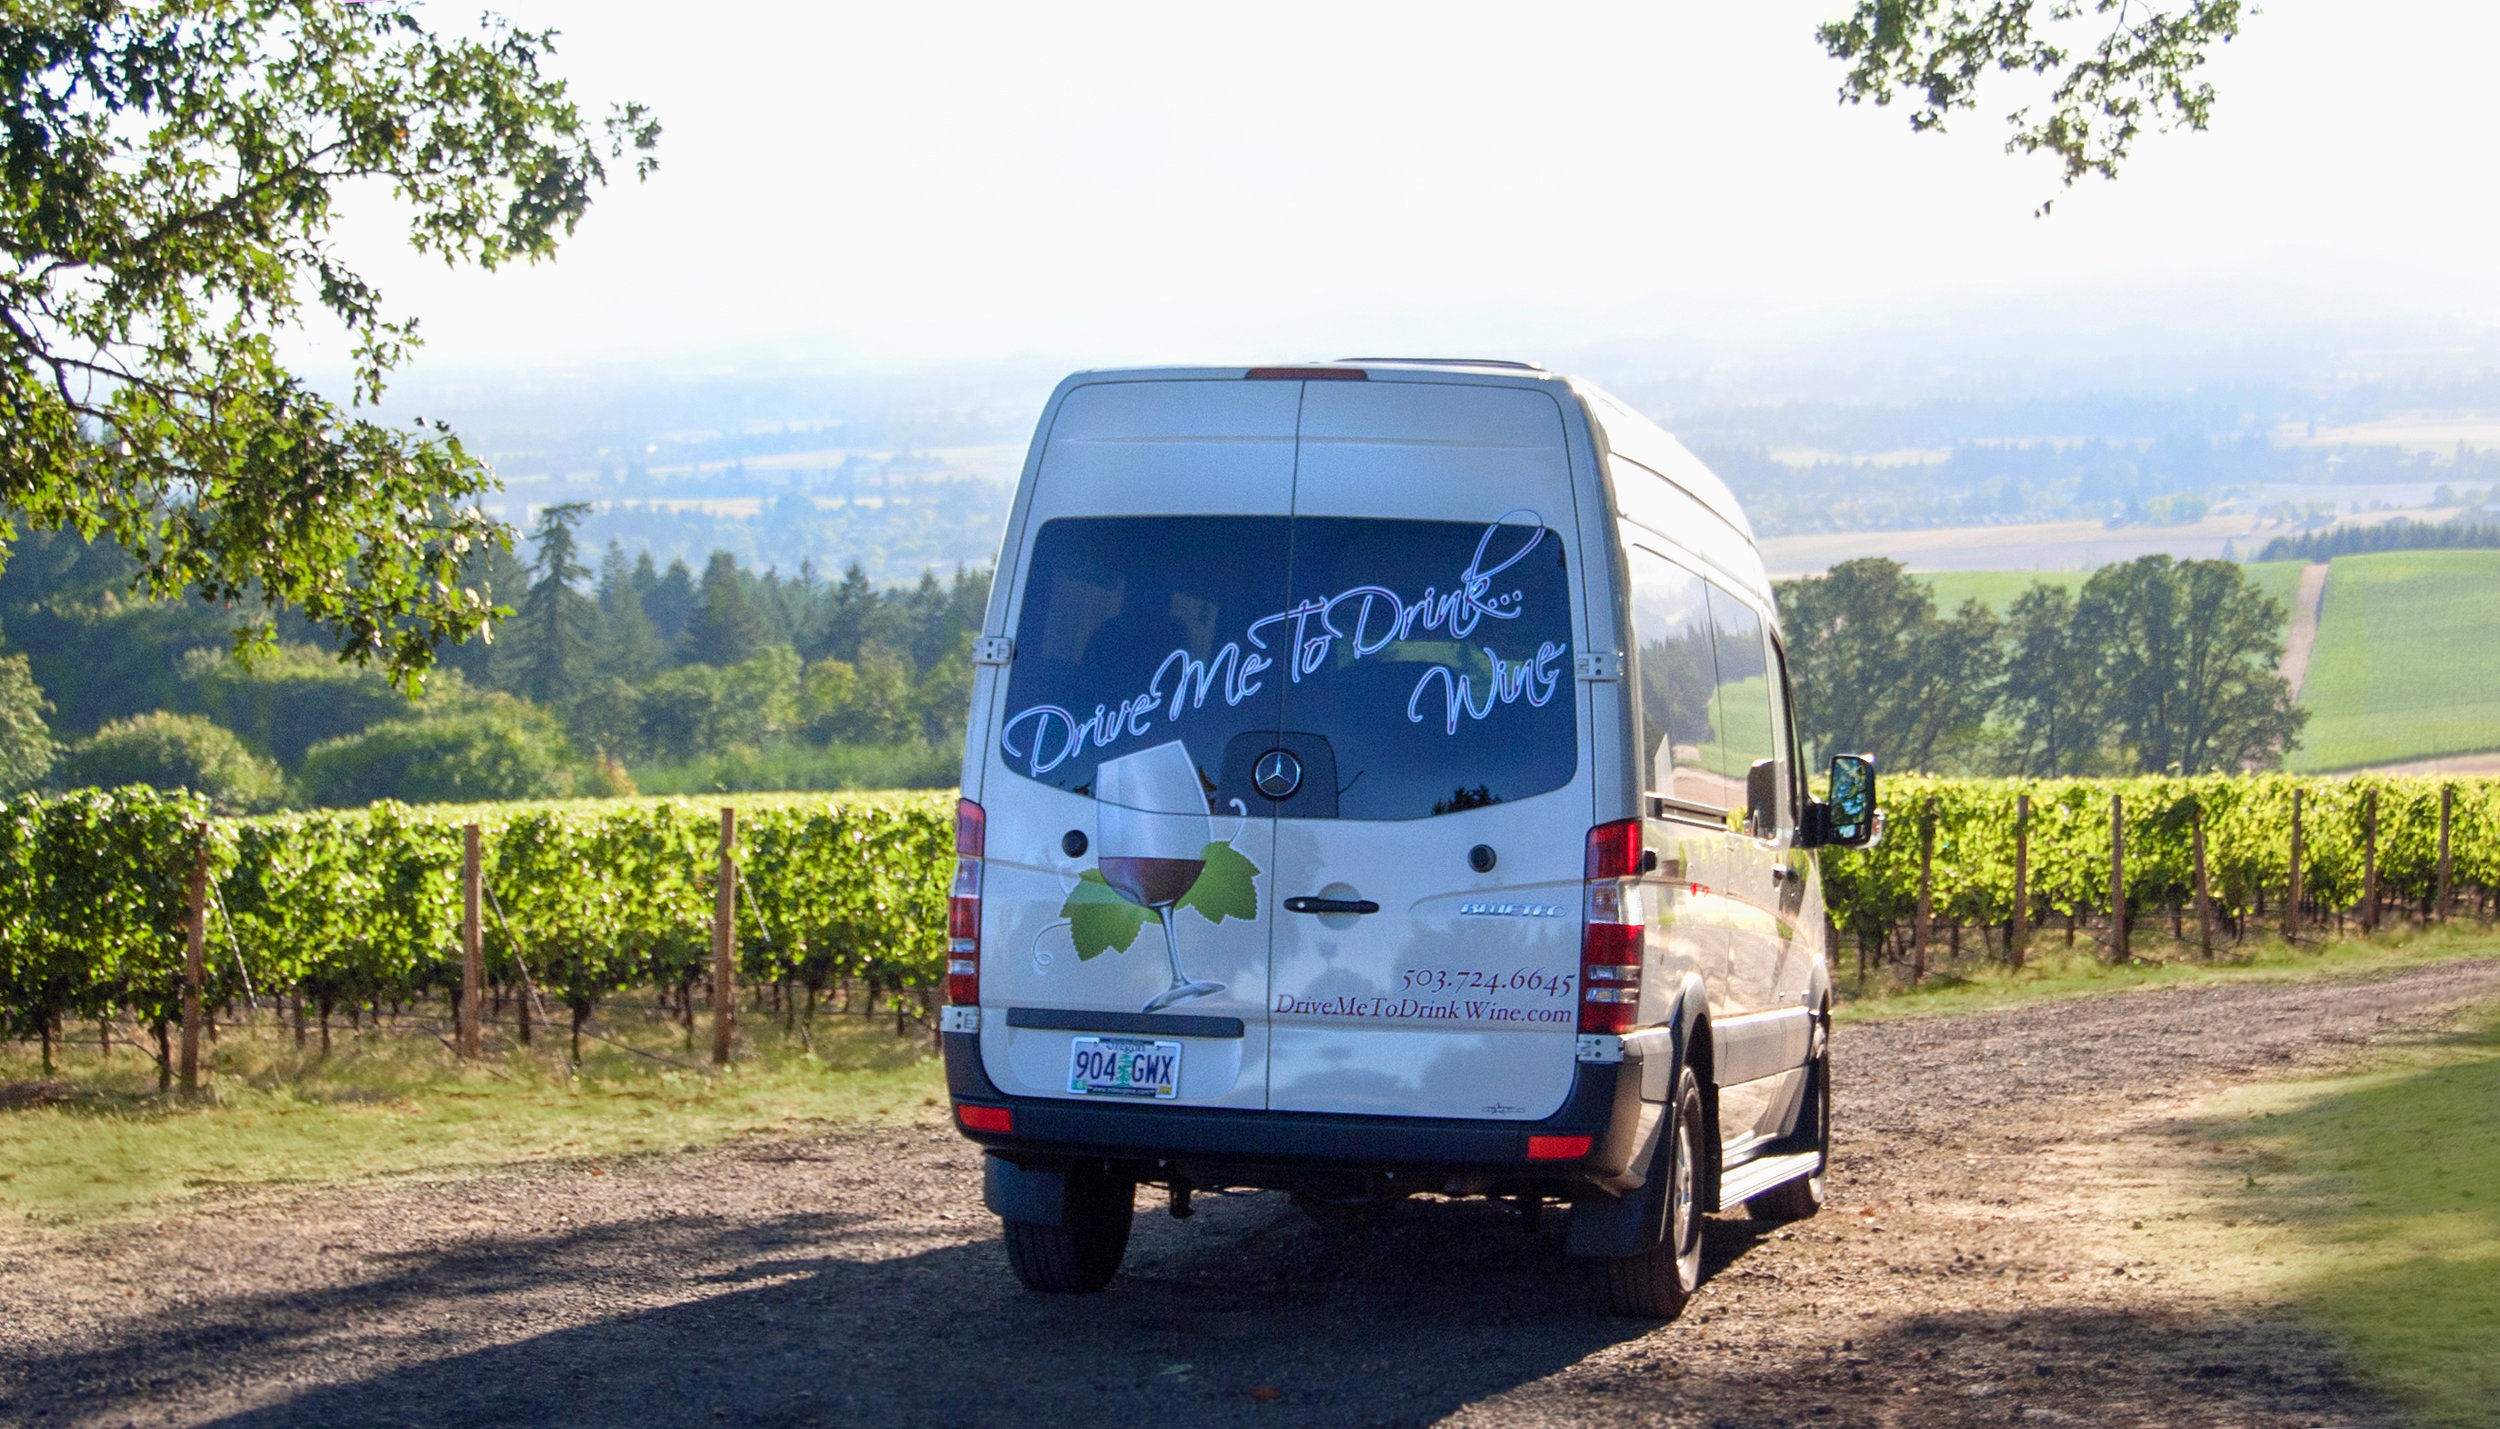 Special pricing on Wine Tours!